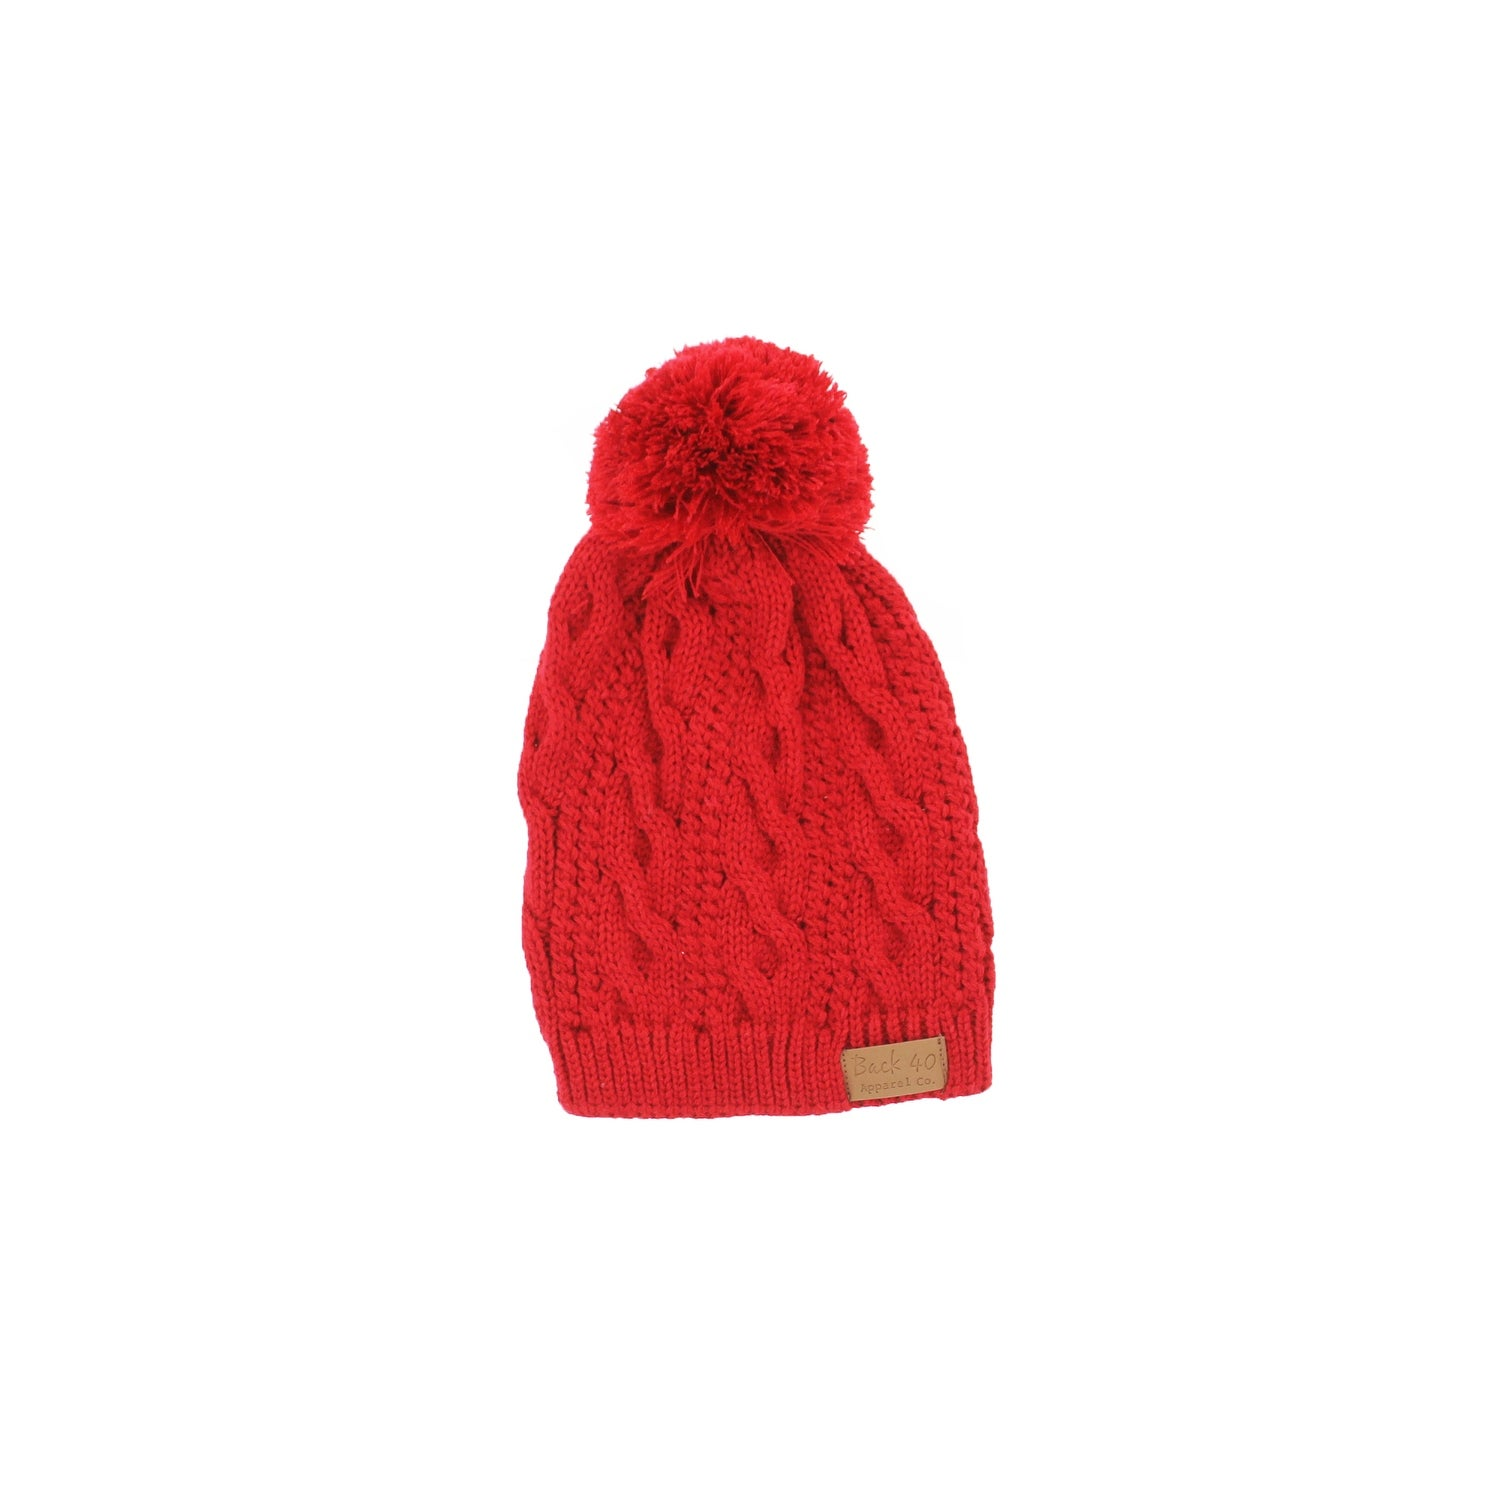 9f00ee4a162292 Shop womens-novelty-knit-caps - Free Shipping On Orders Over $45 -  Overstock.com - 20304693